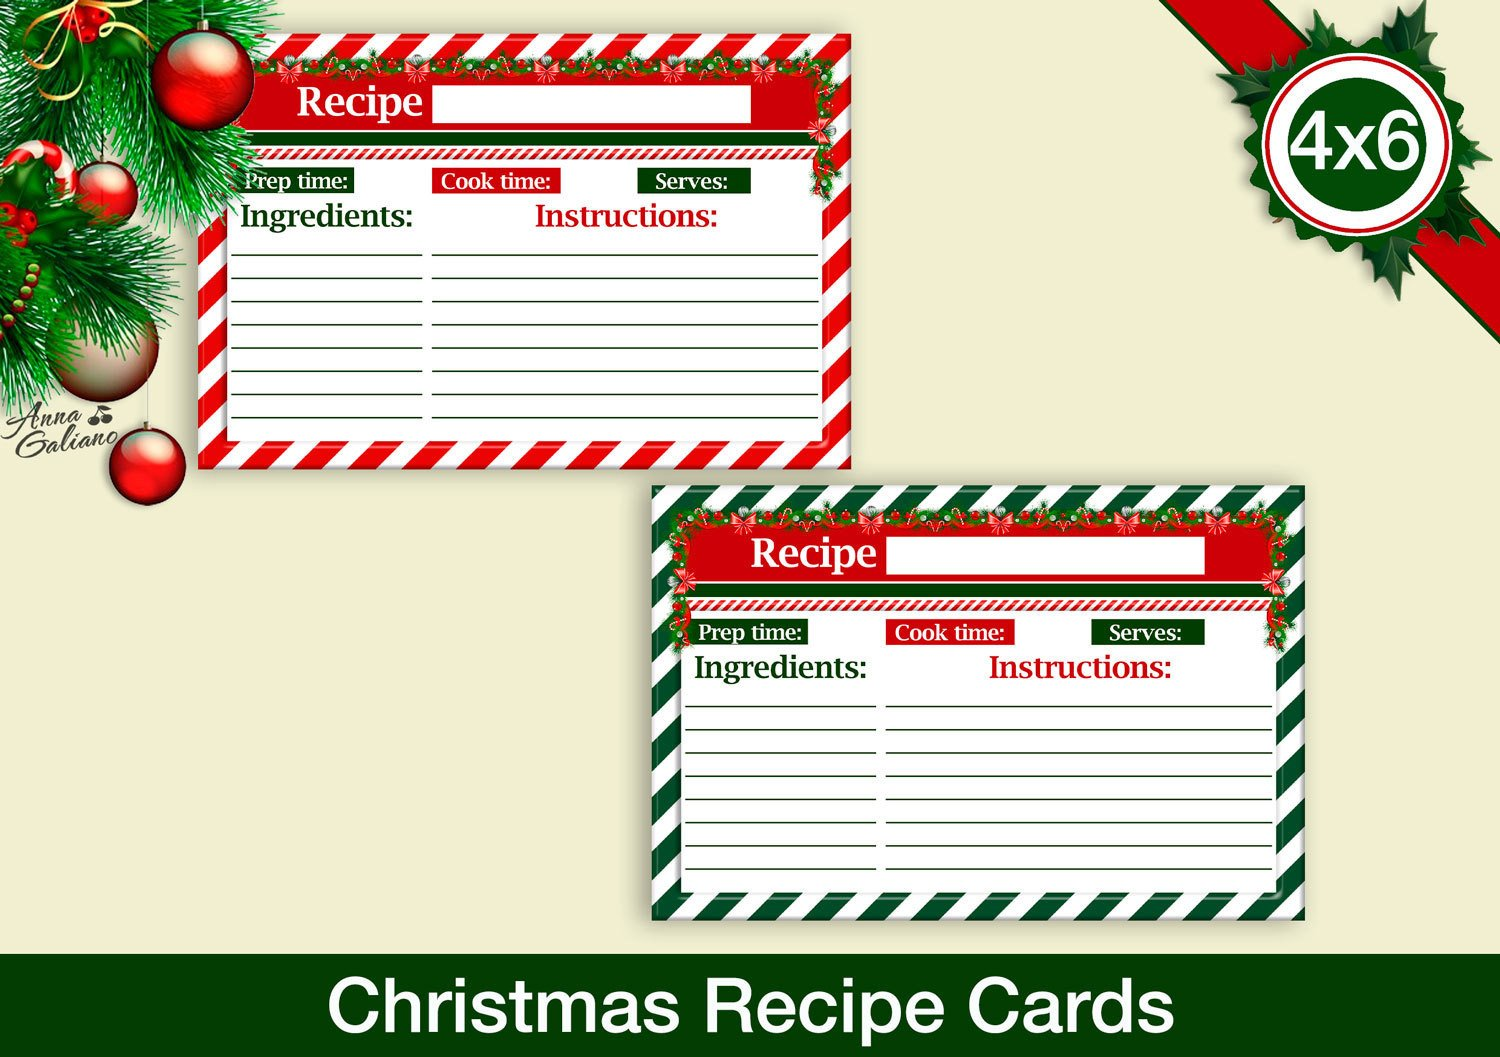 Christmas Recipe Card Template Christmas Recipe Cards 4x6 Recipe Cards Printable Recipe